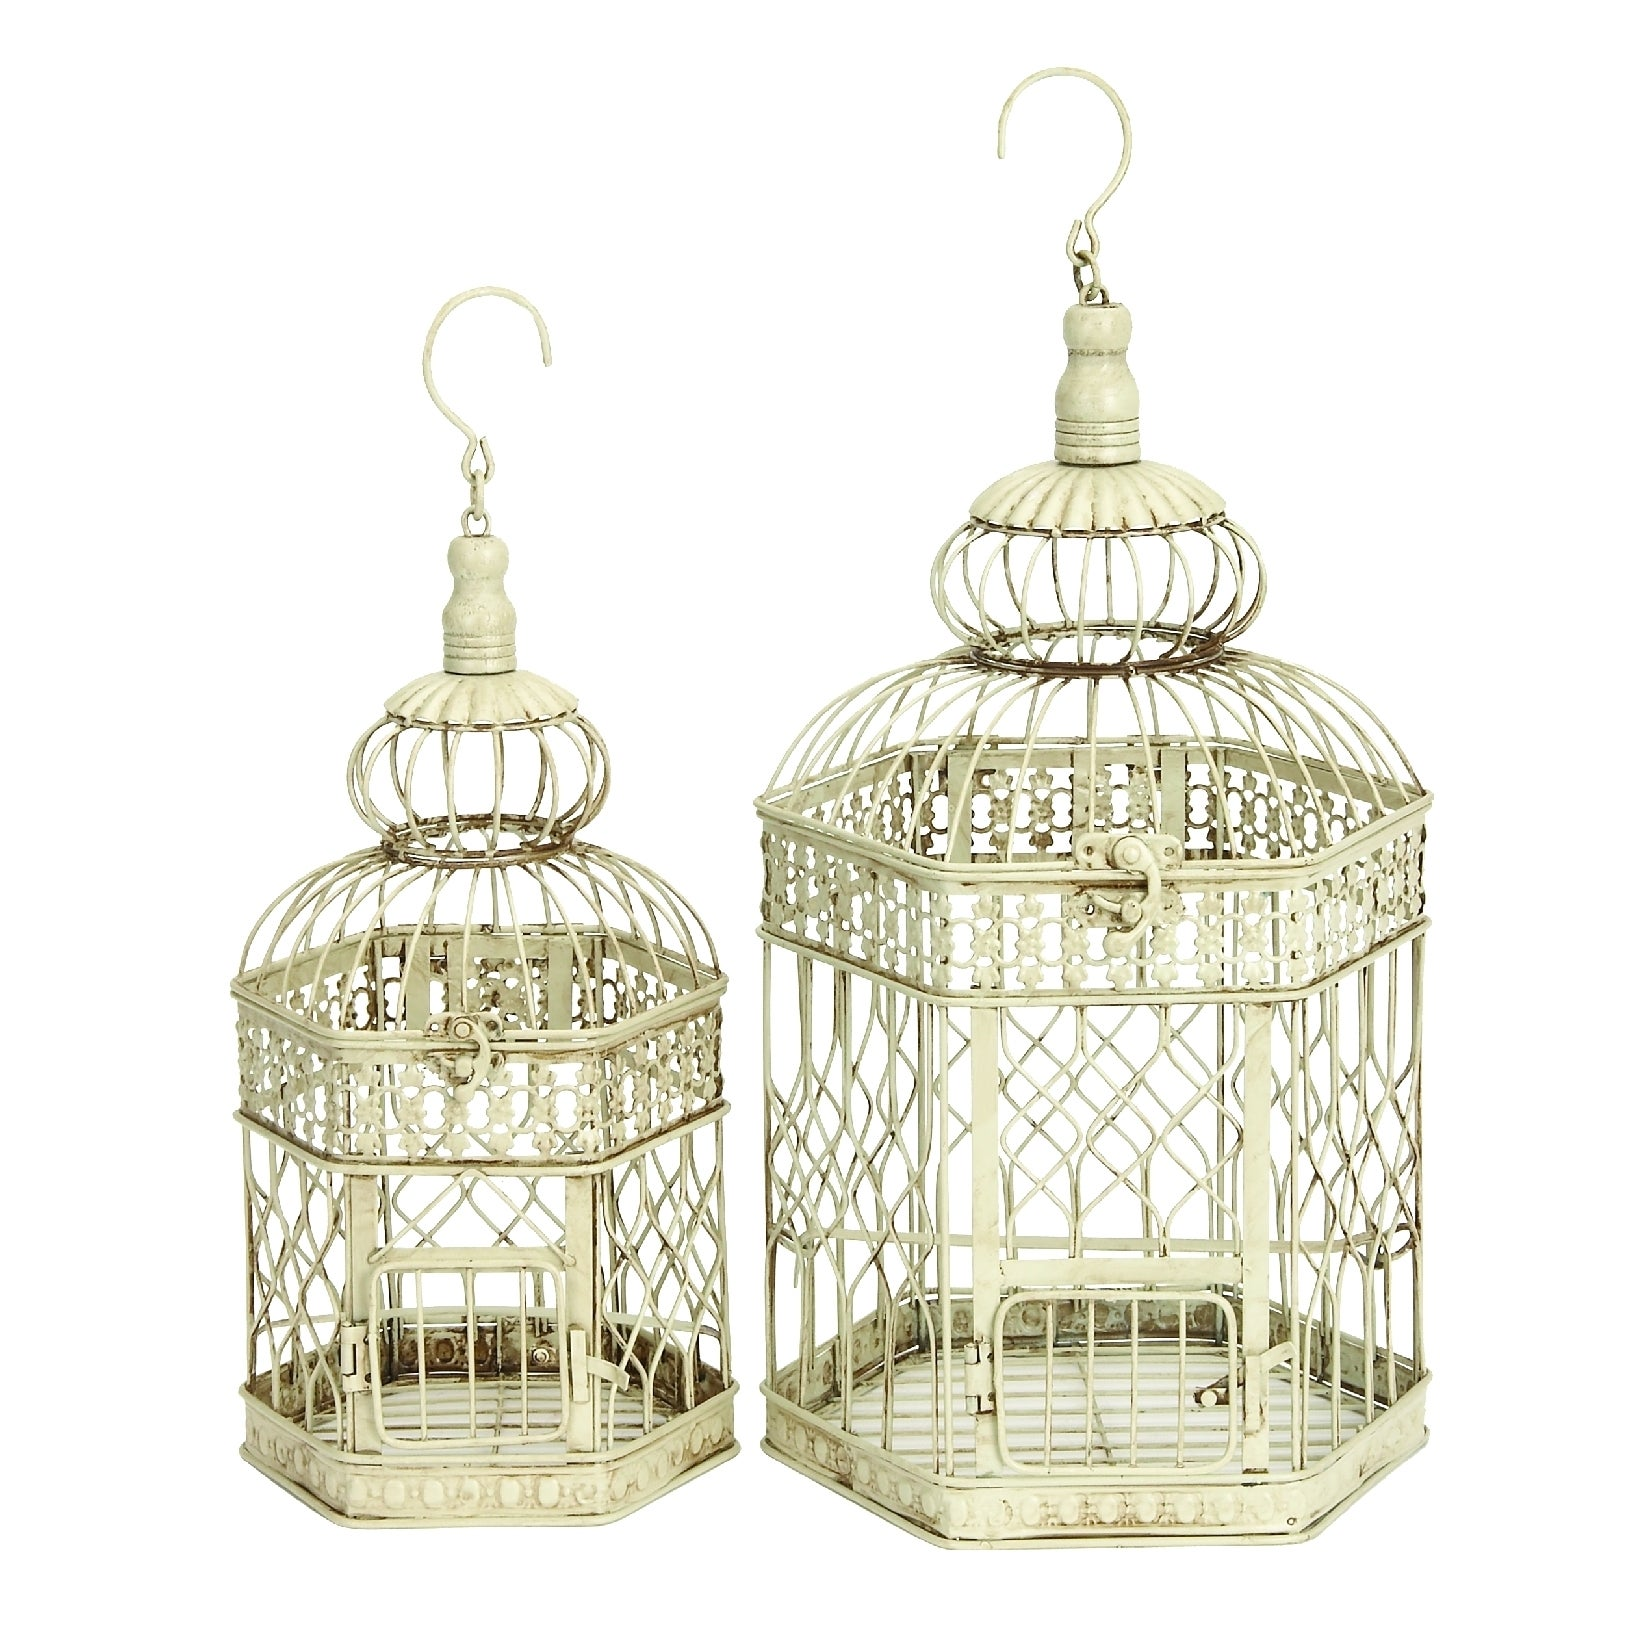 White Metal Bird Cages (Set of 2)